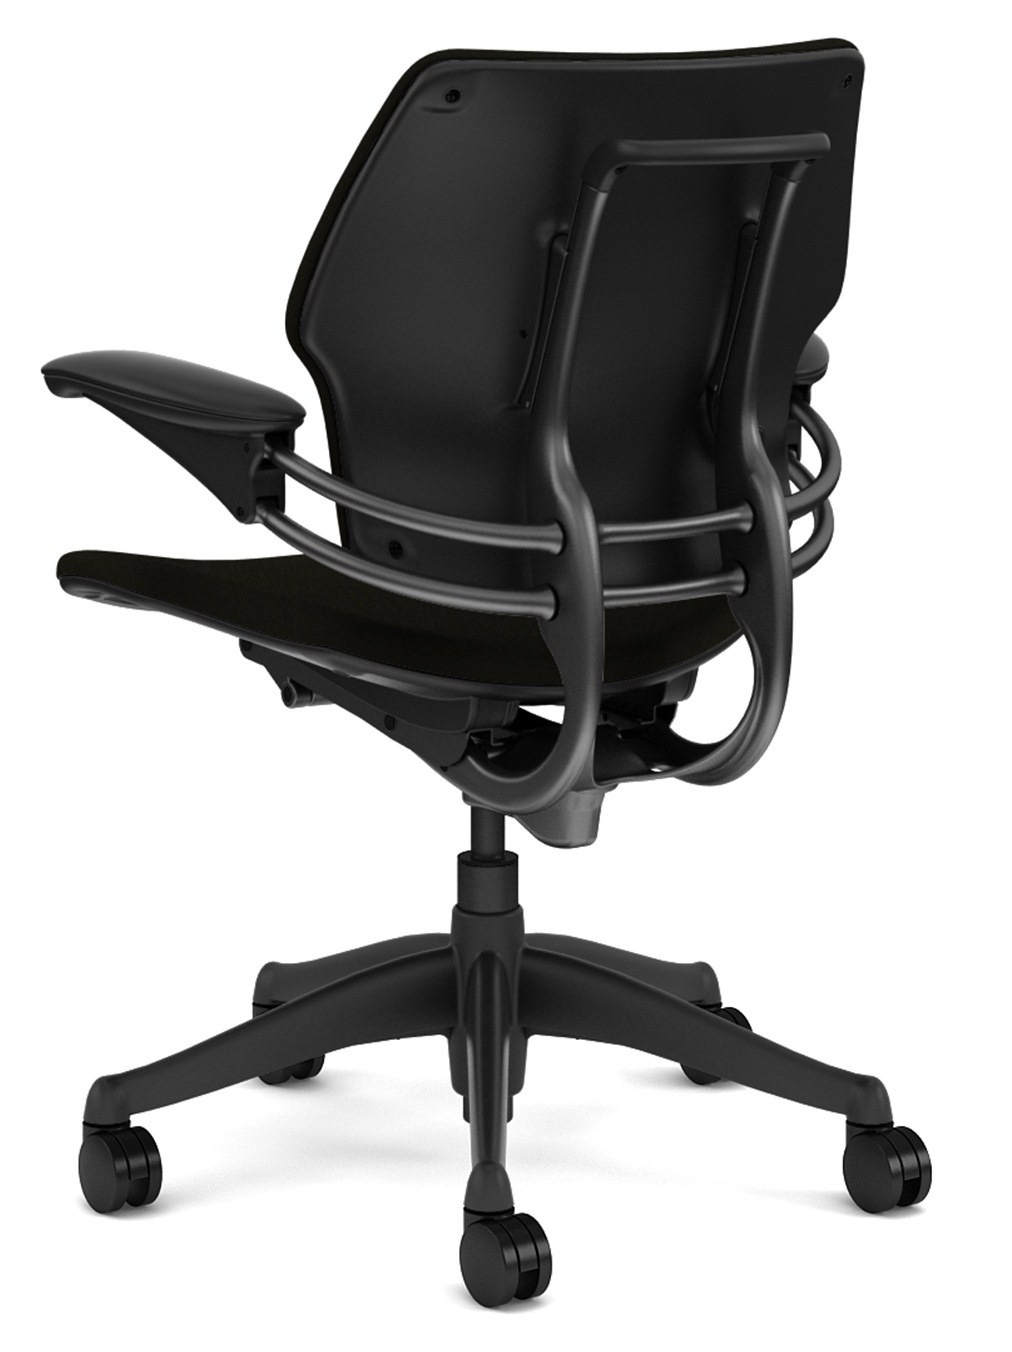 Humanscale freedom chair leather -  Freedom Mid Back Task Chair By Humanscale Back